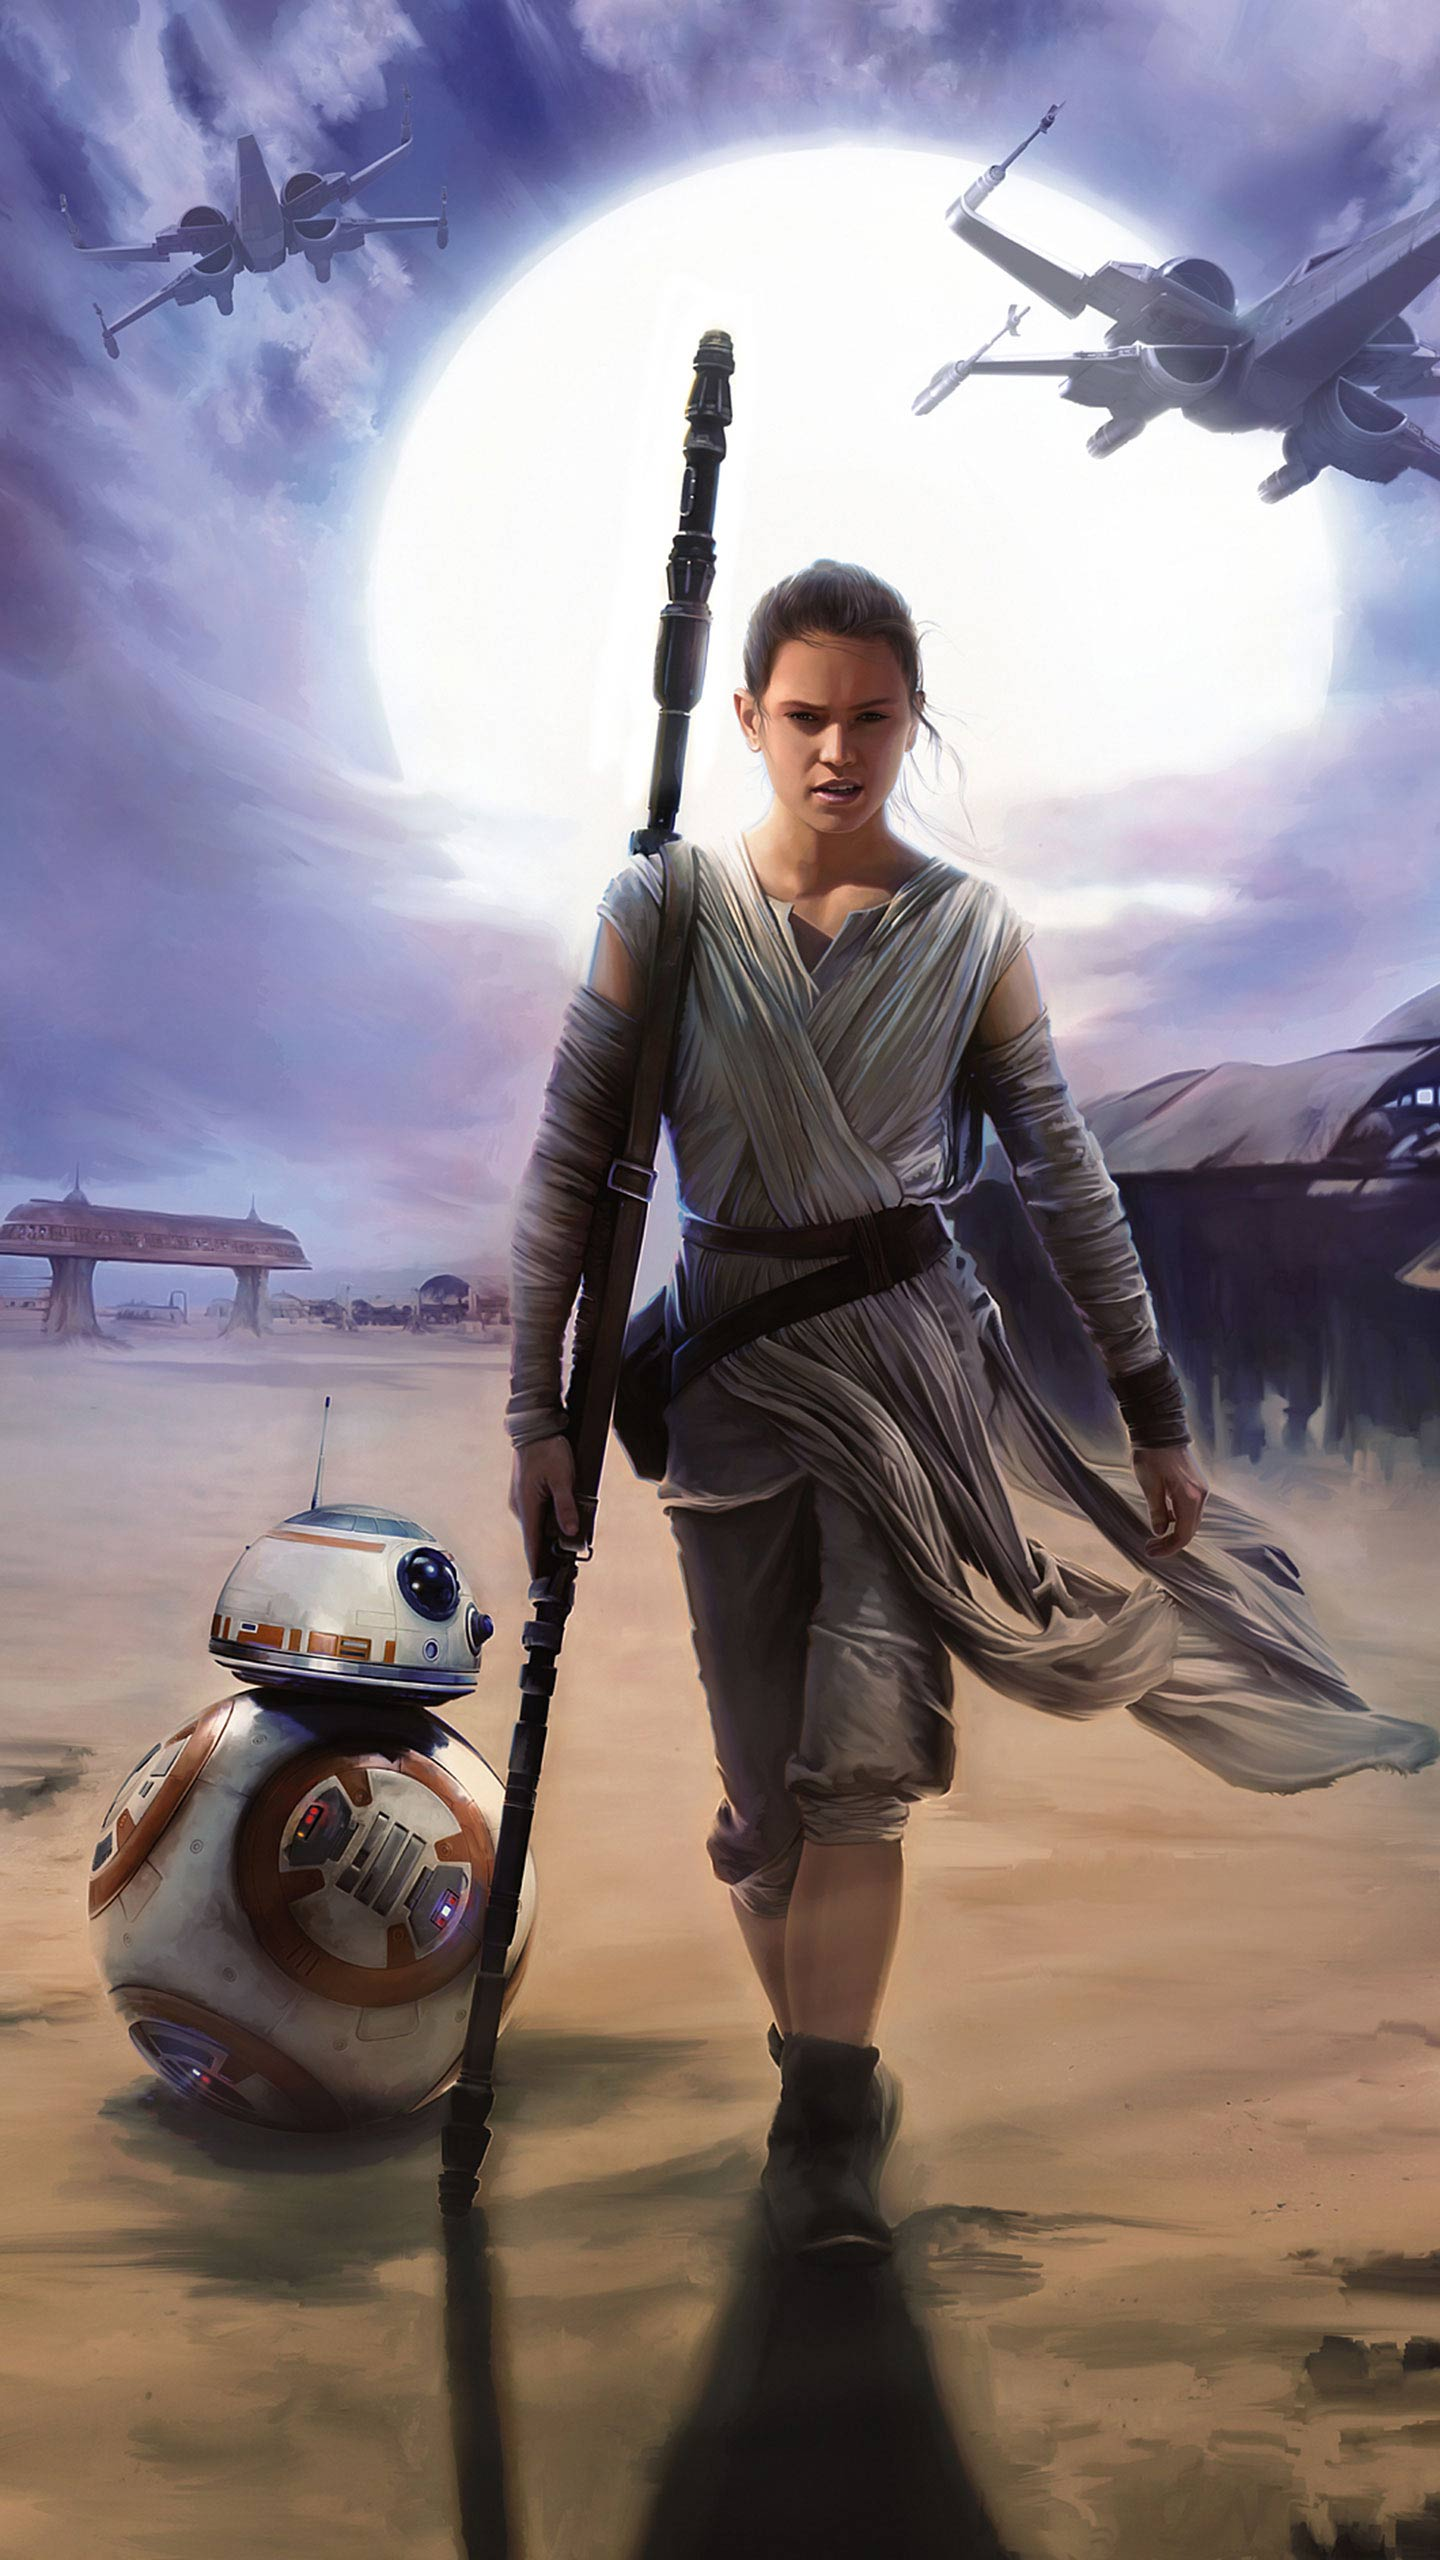 1440x2560 Star Wars: The Force Awakens wallpapers for your iPhone 6s and ...